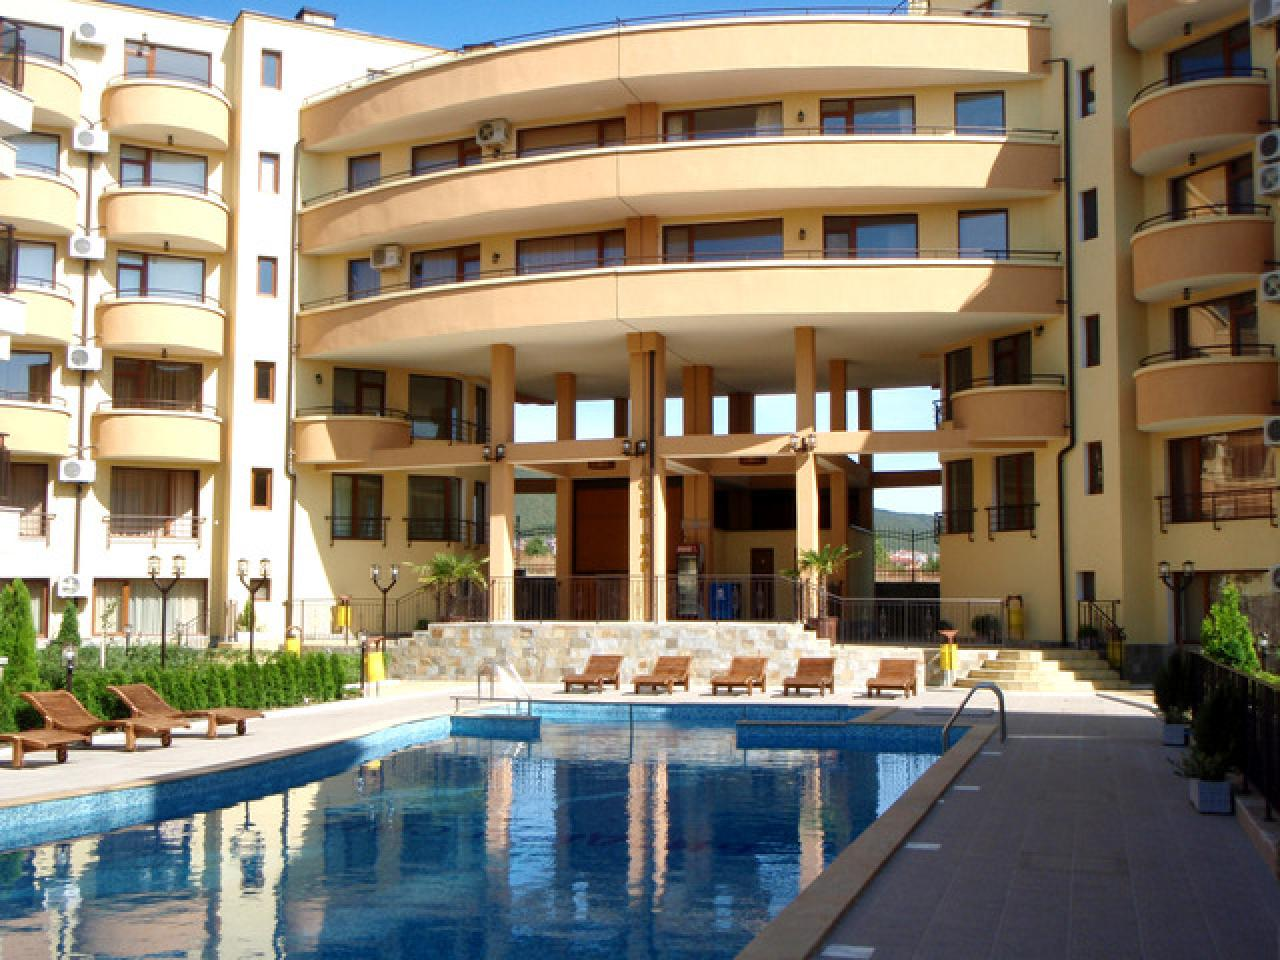 Apartments in Bulgaria on the sea! - 1